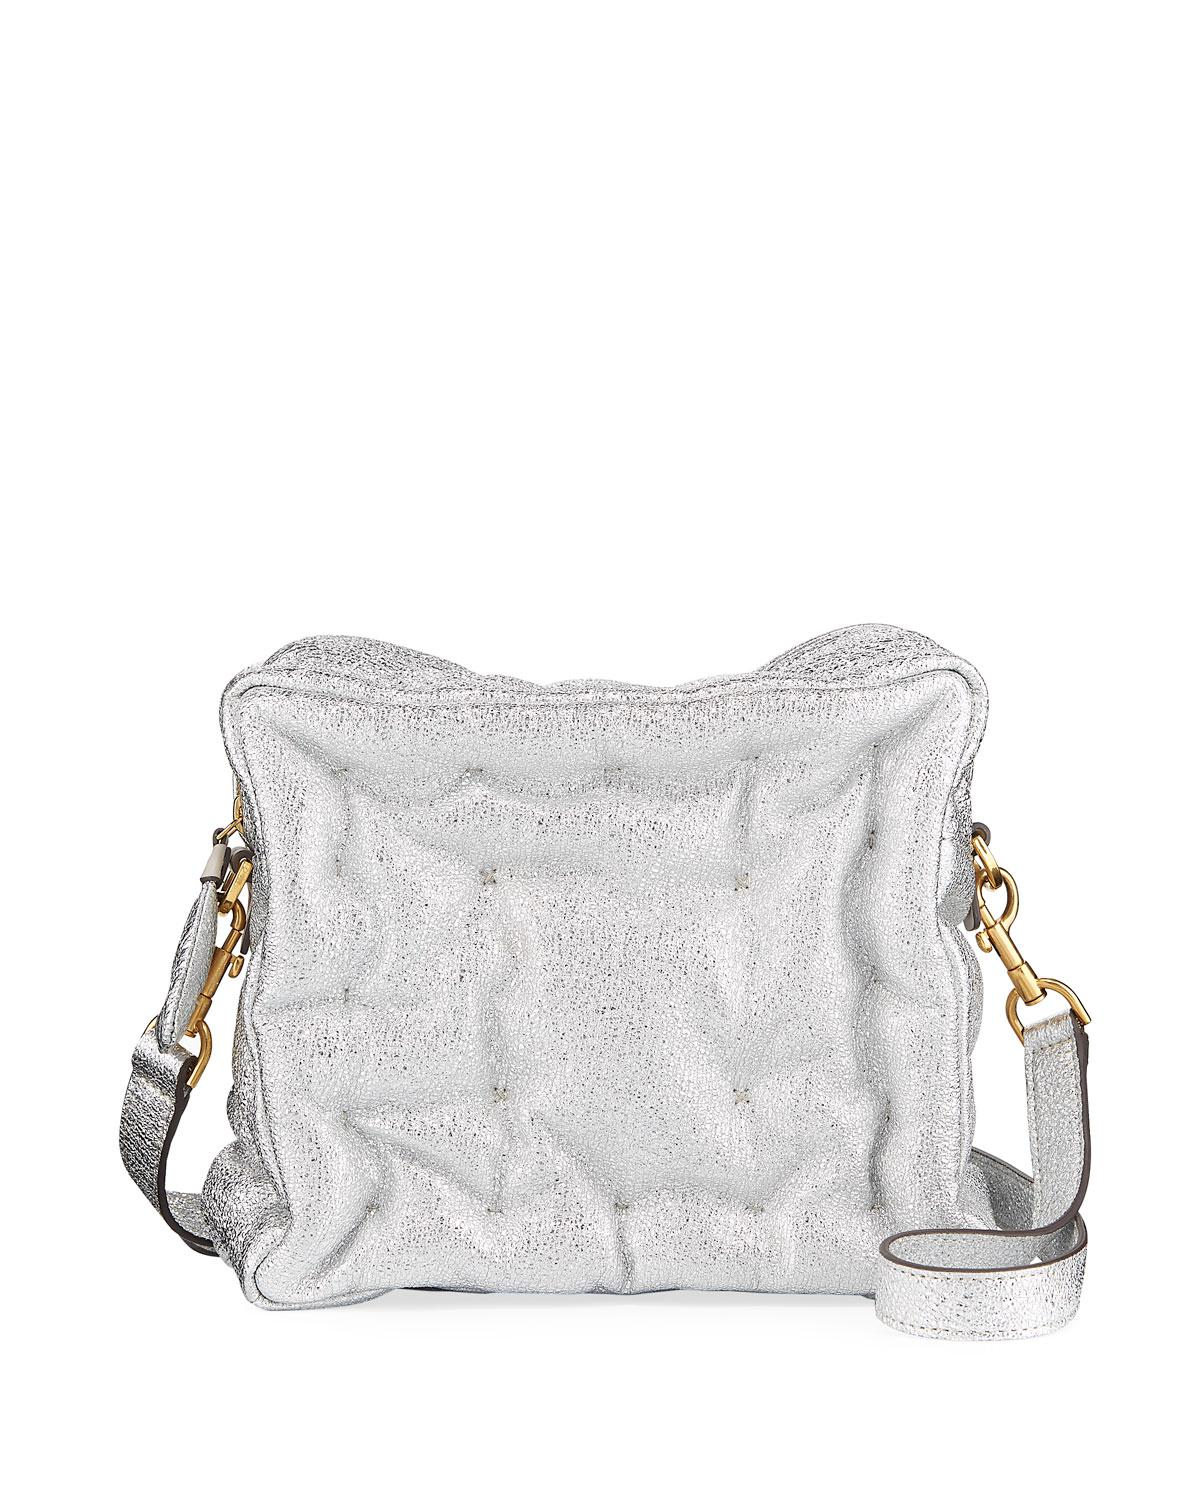 Anya Hindmarch cube crossbody bag Sale Cheap Prices Lowest Price Hu9bL3Y7xl